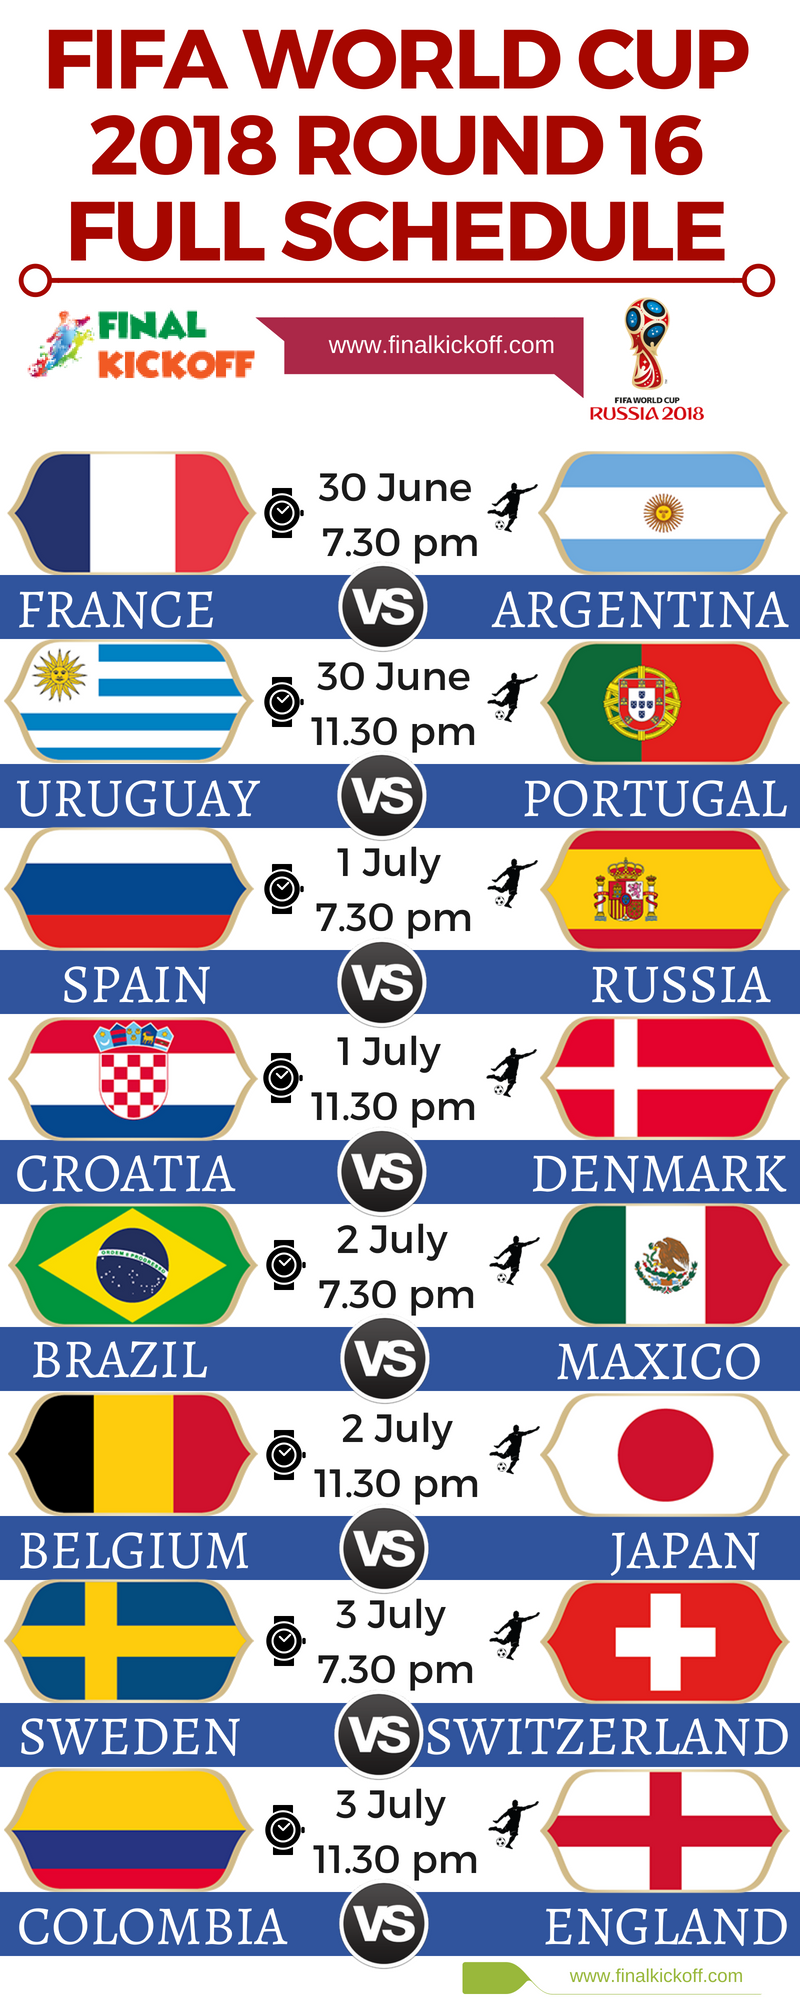 FIFA WORLD CUP 2018 ROUND 16 FULL SCHEDULE Coupe du